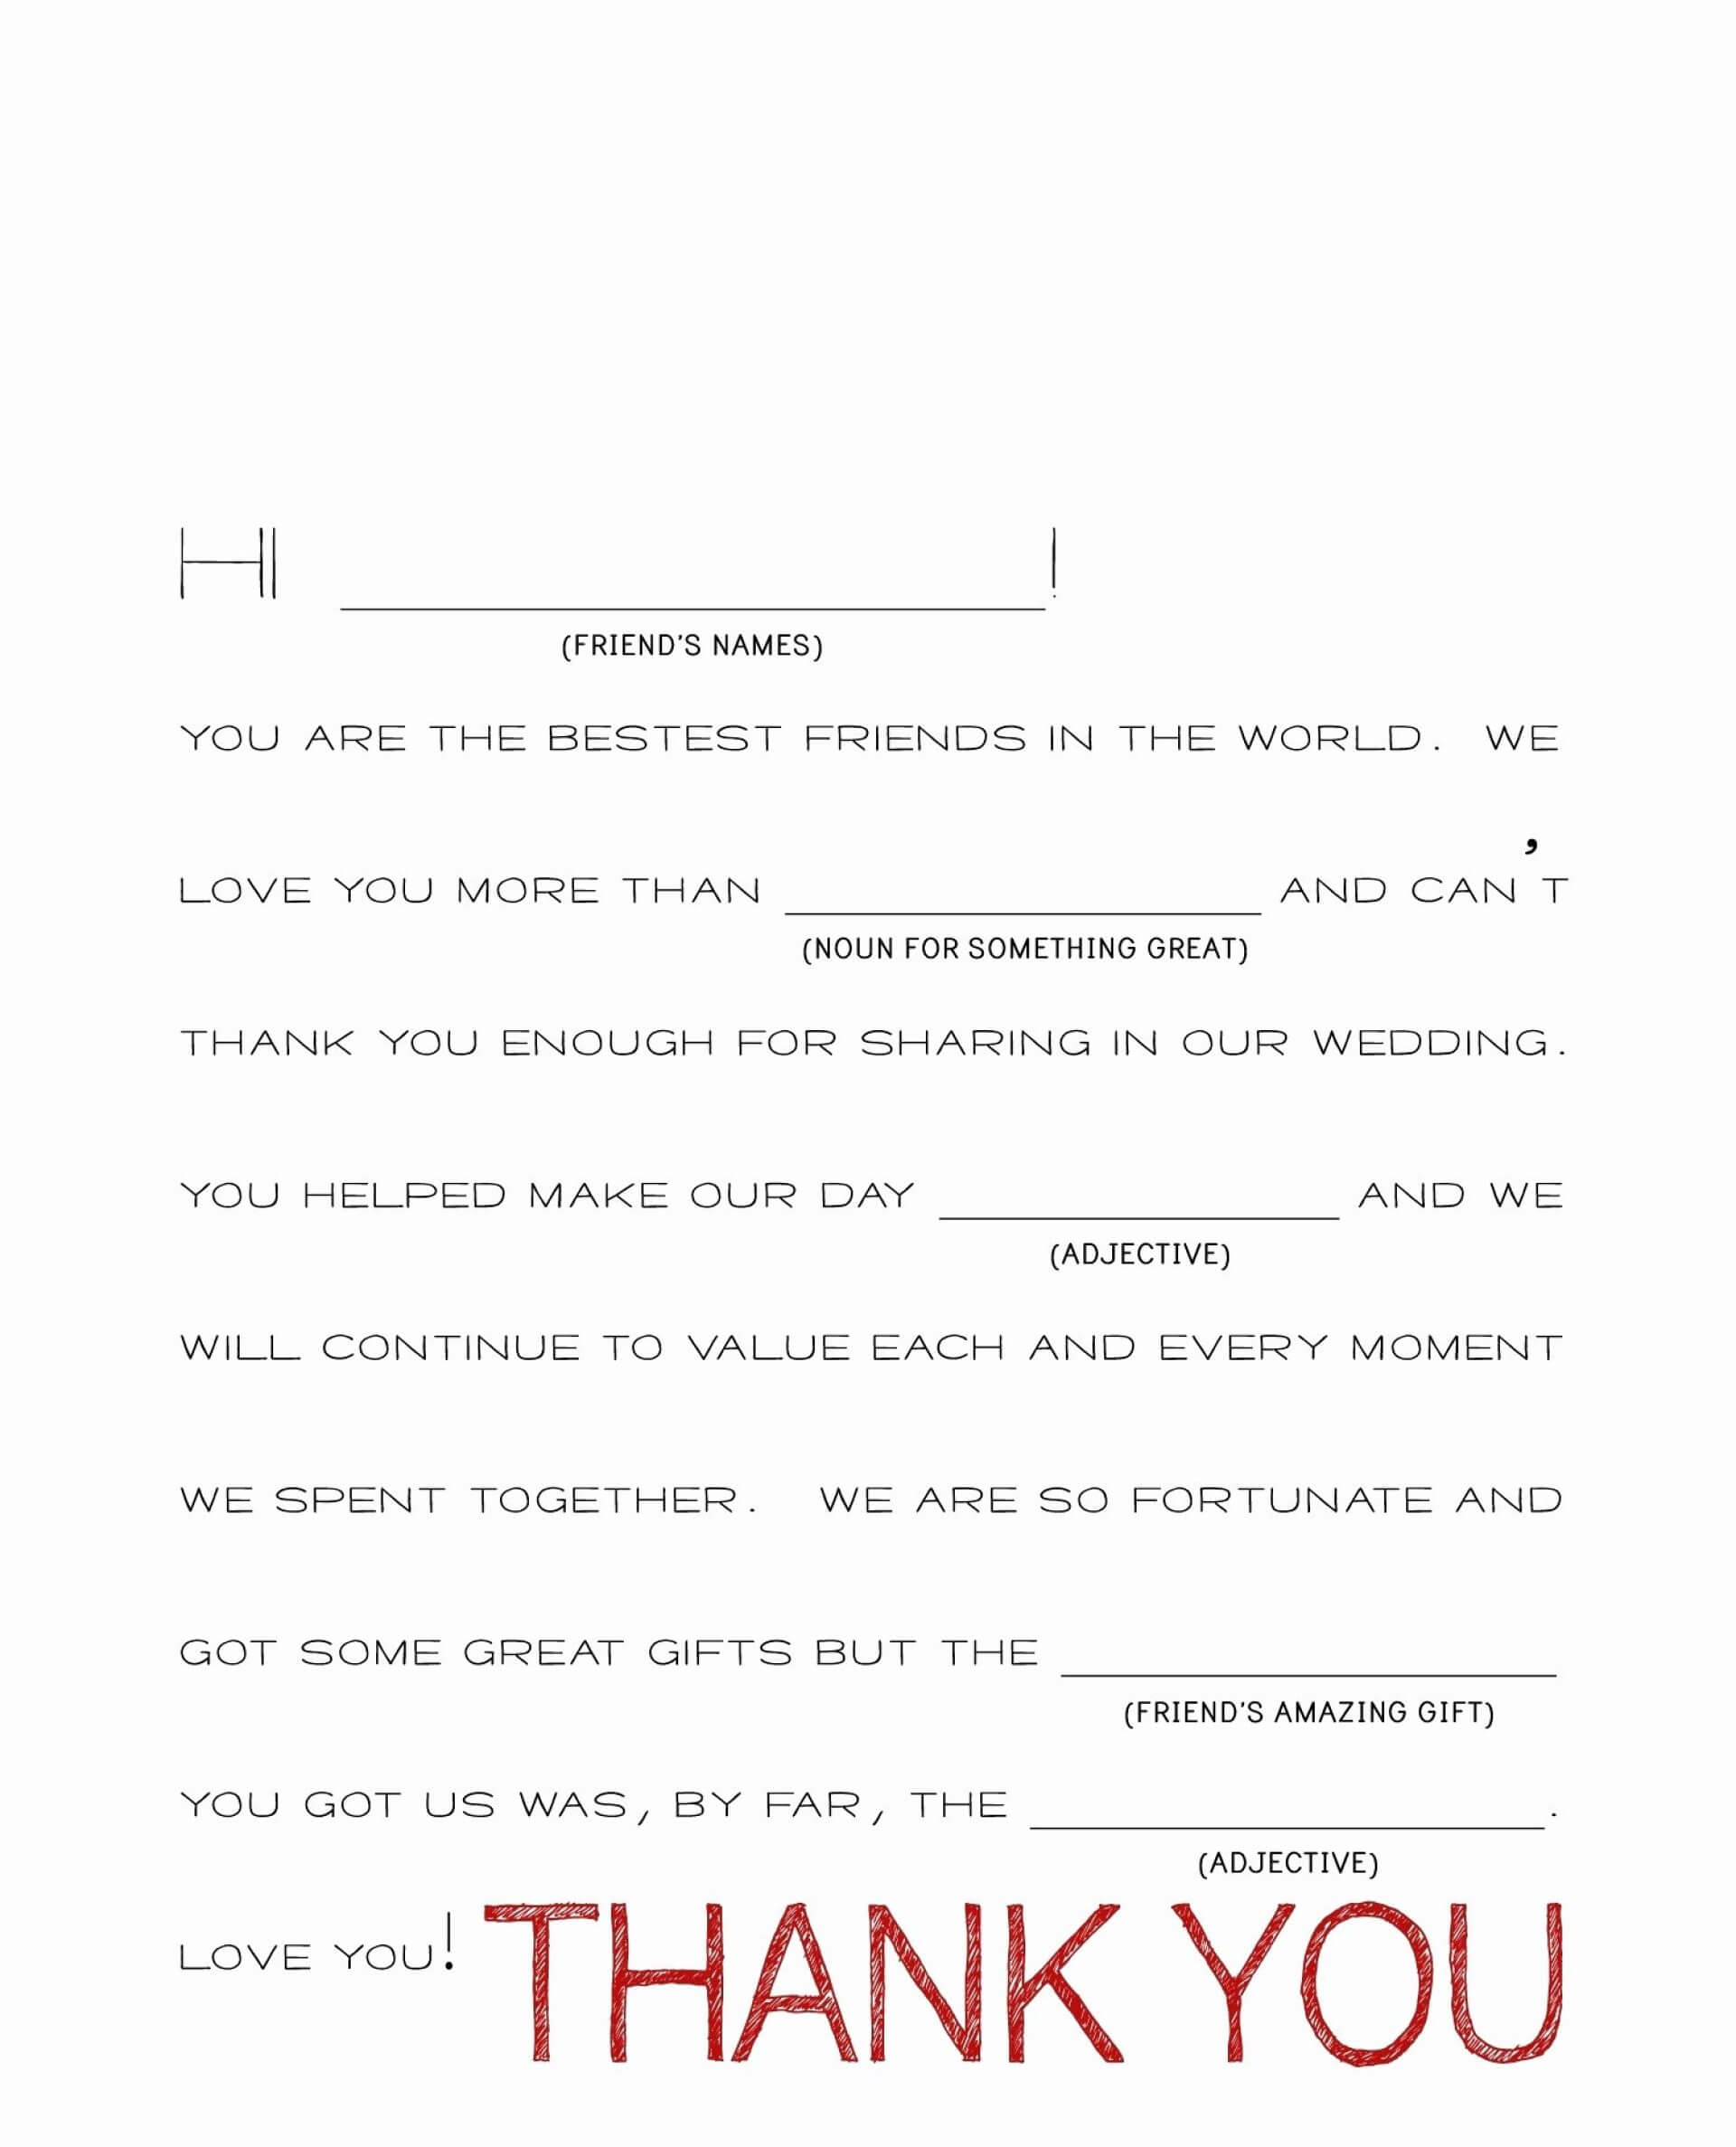 009 17 Thefold Weddingthanks B1512404707 Wedding Present Throughout Thank You Note Cards Template